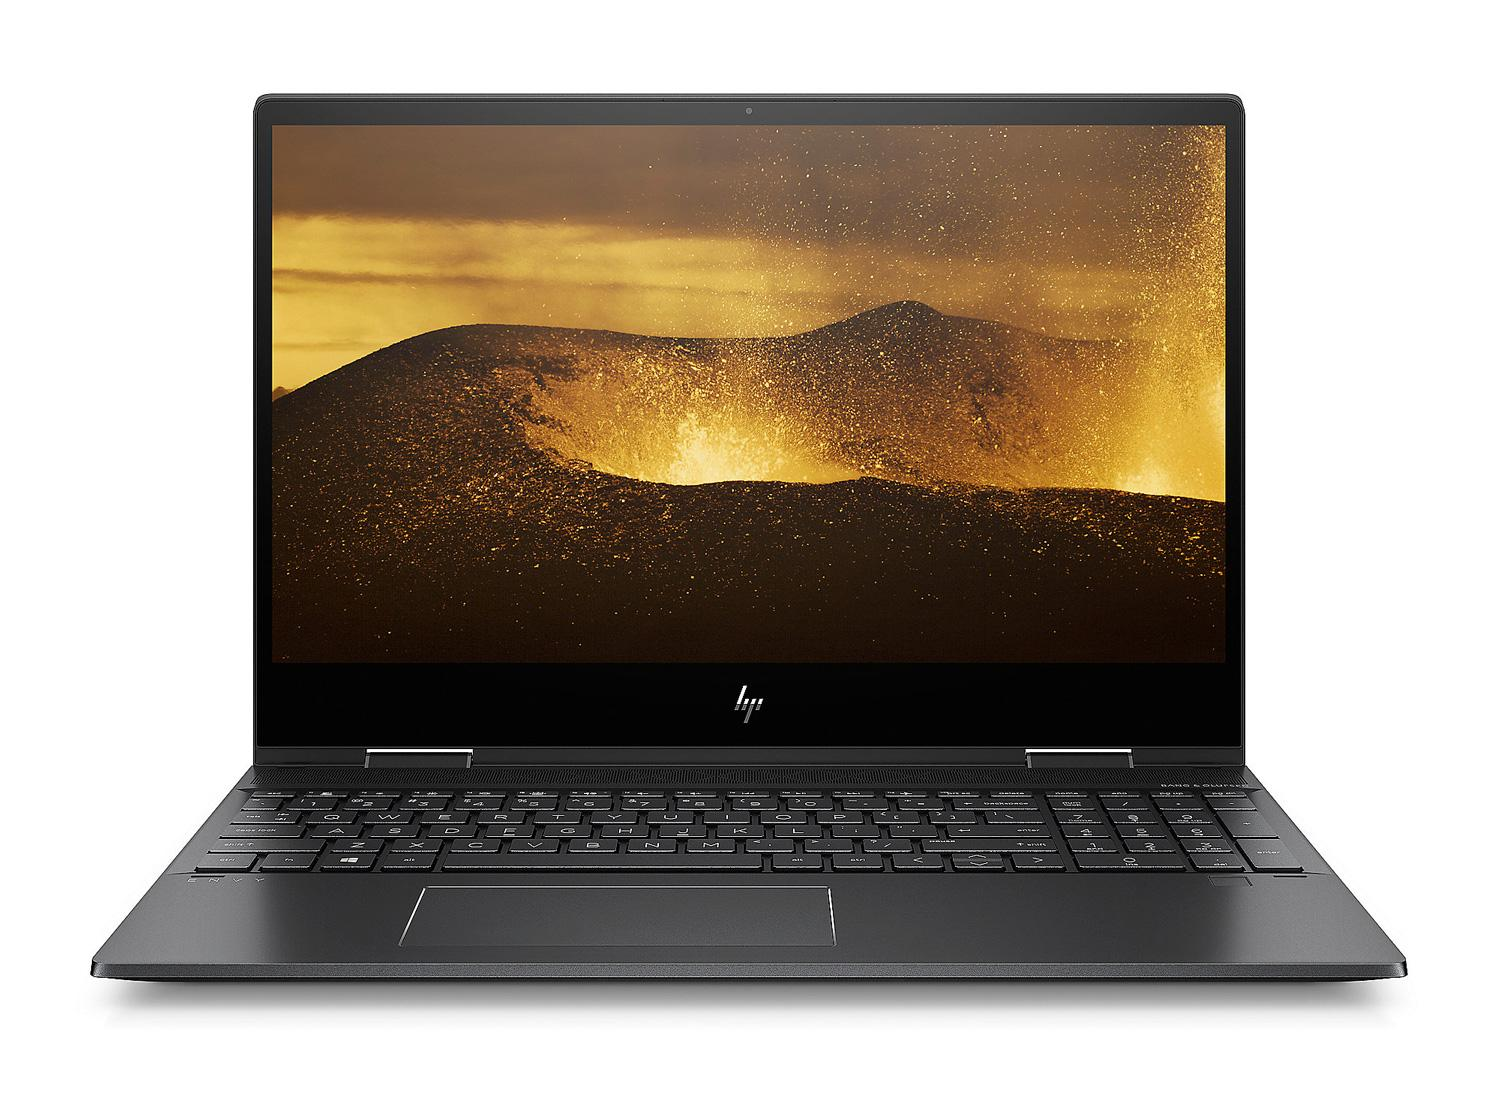 Ordinateur portable HP Envy x360 15-ds0004nf Noir cendre tactile - AMD Ryzen 5 - photo 3